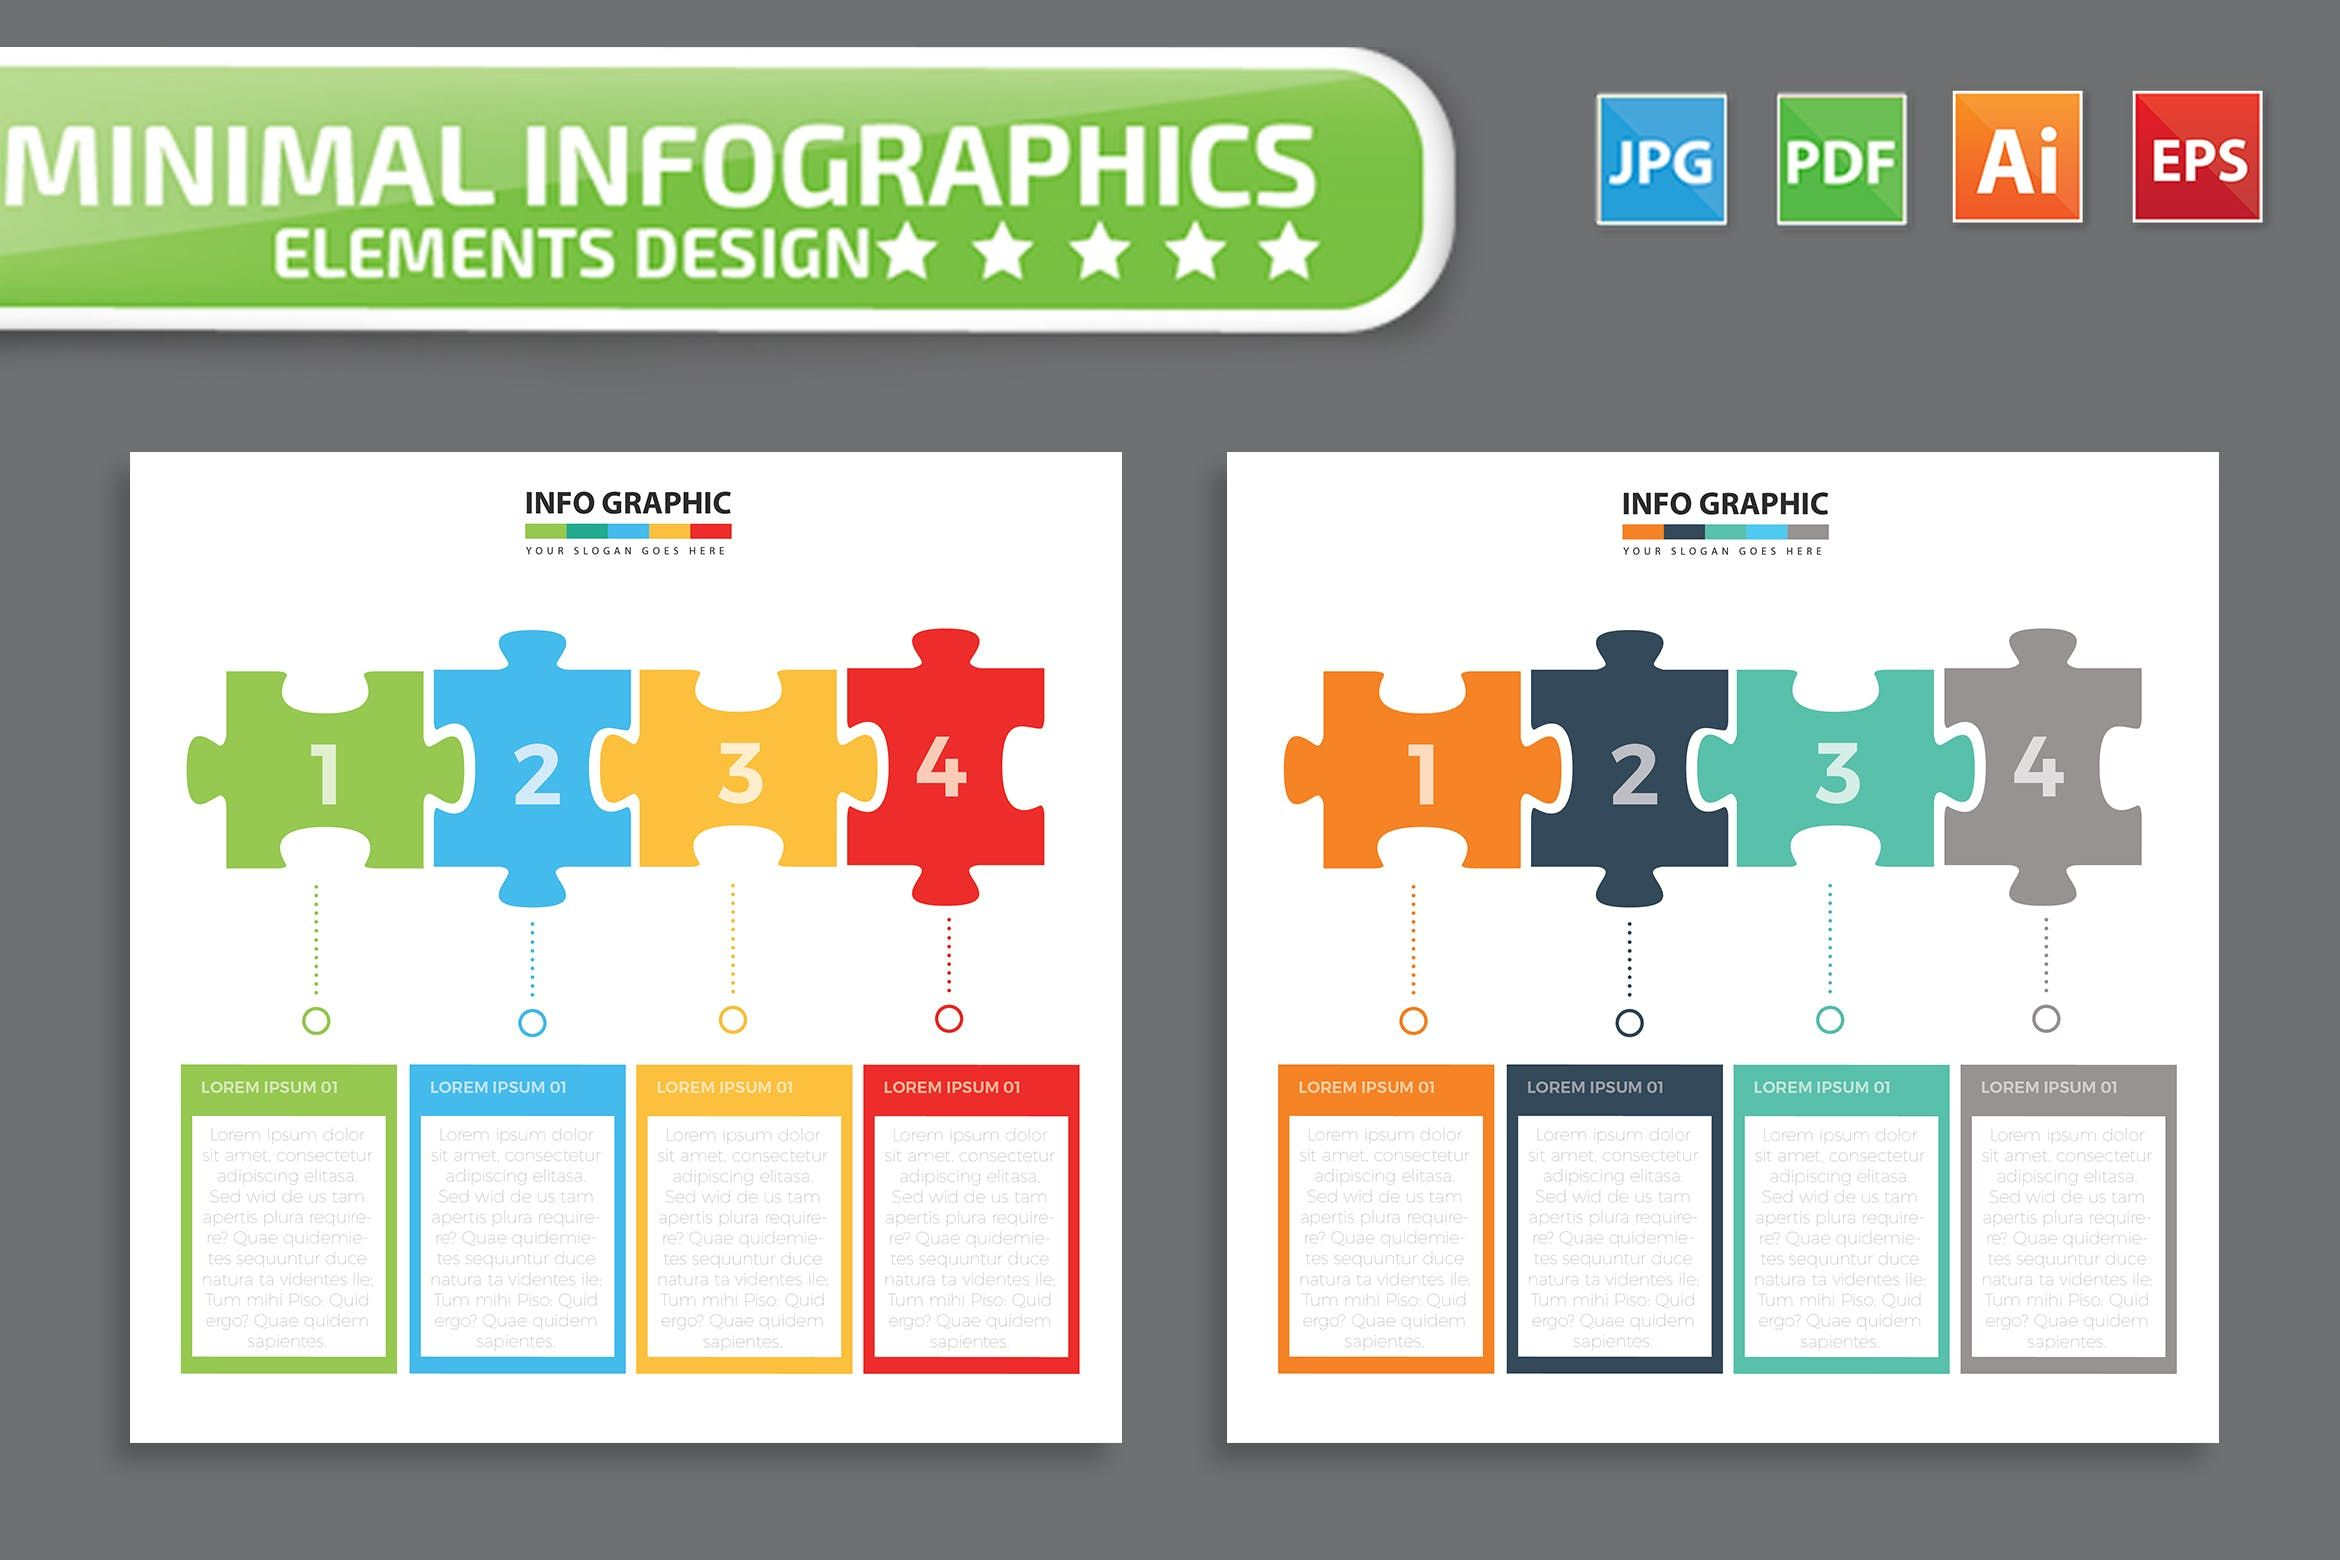 Puzzle Infographic Design By Mamanamsai On Envato Elements Infographic Design Infographic Graphic Design Infographic